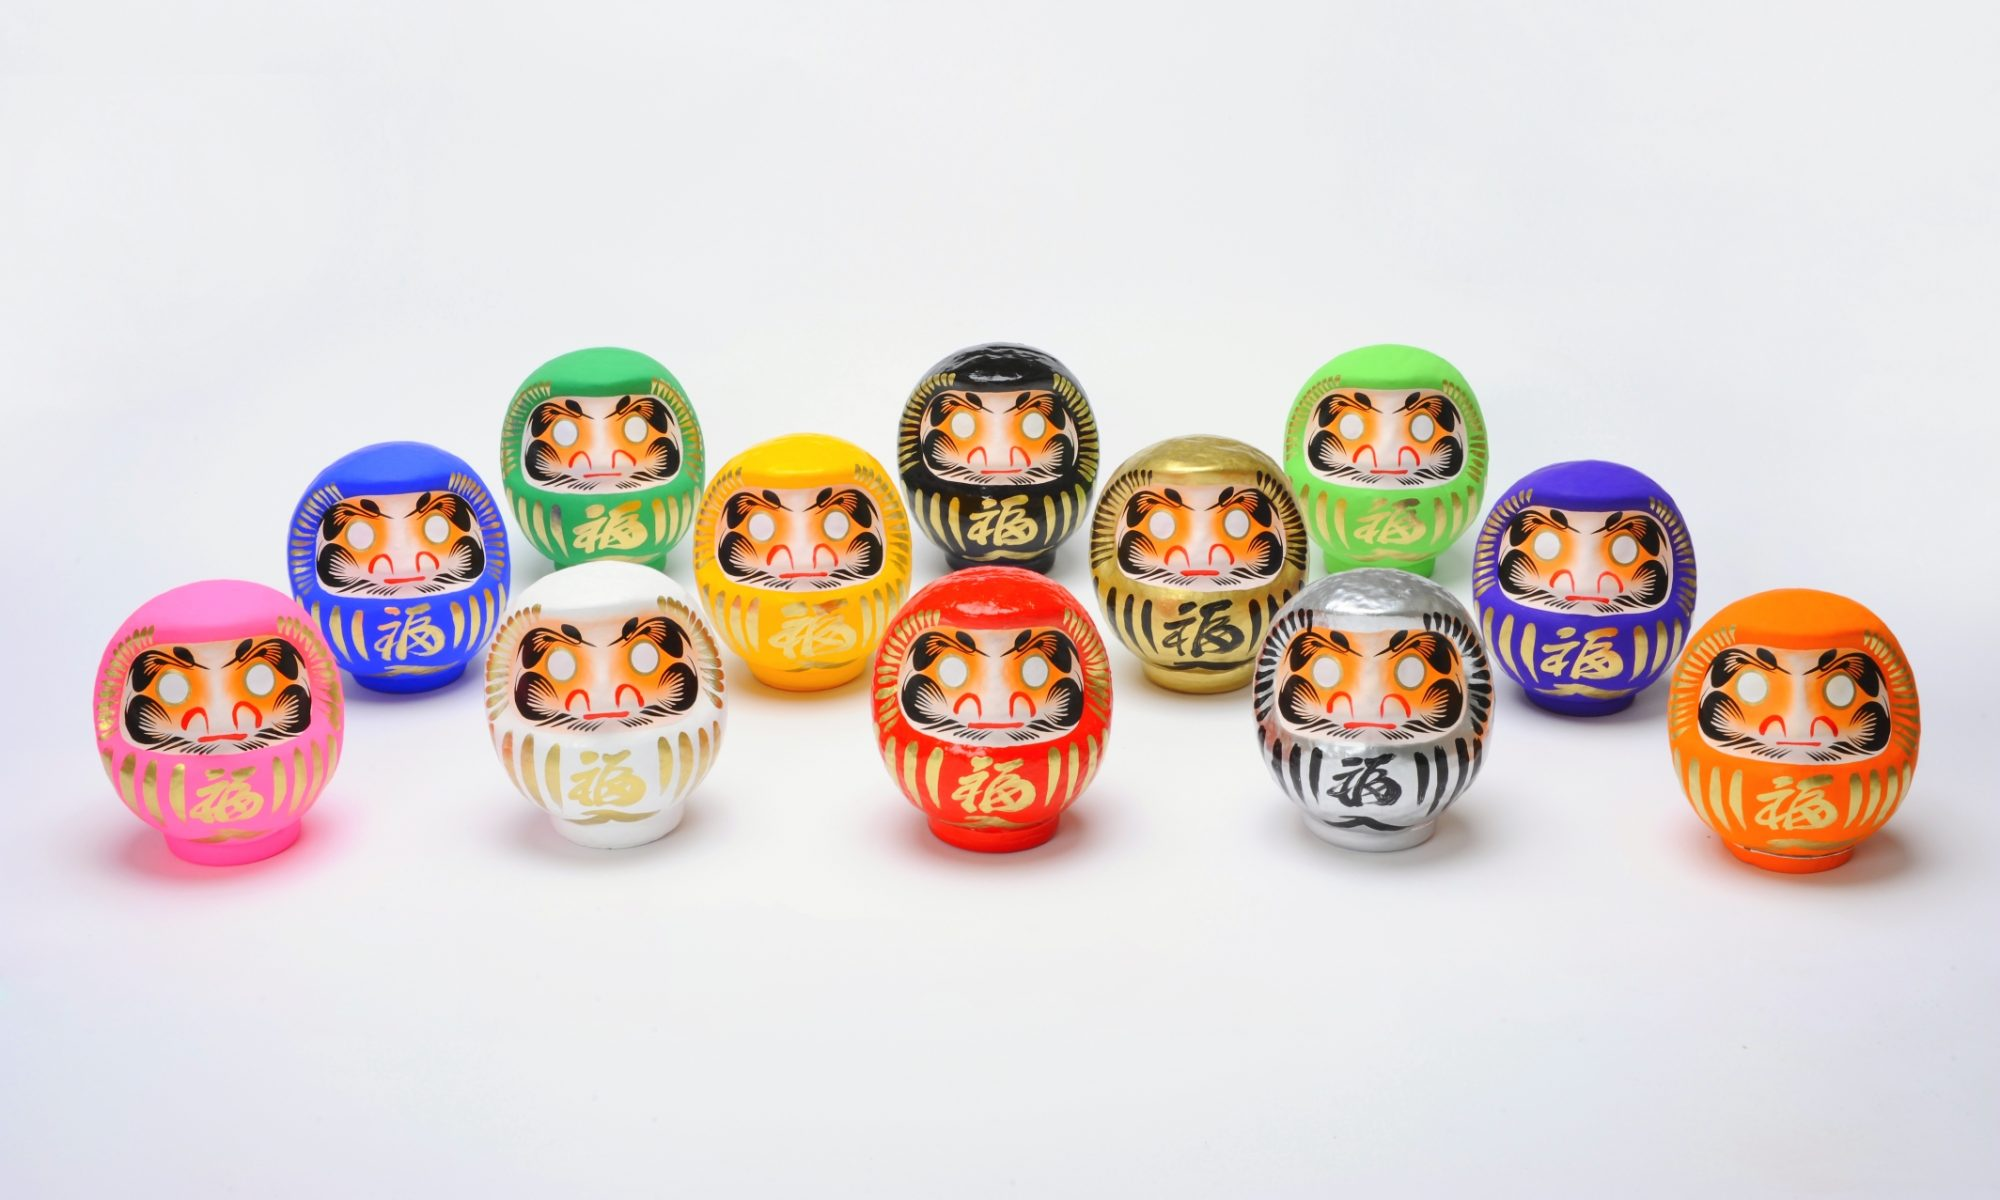 Shop NEXT's Daruma Doll Handmade in Takasaki, Japan